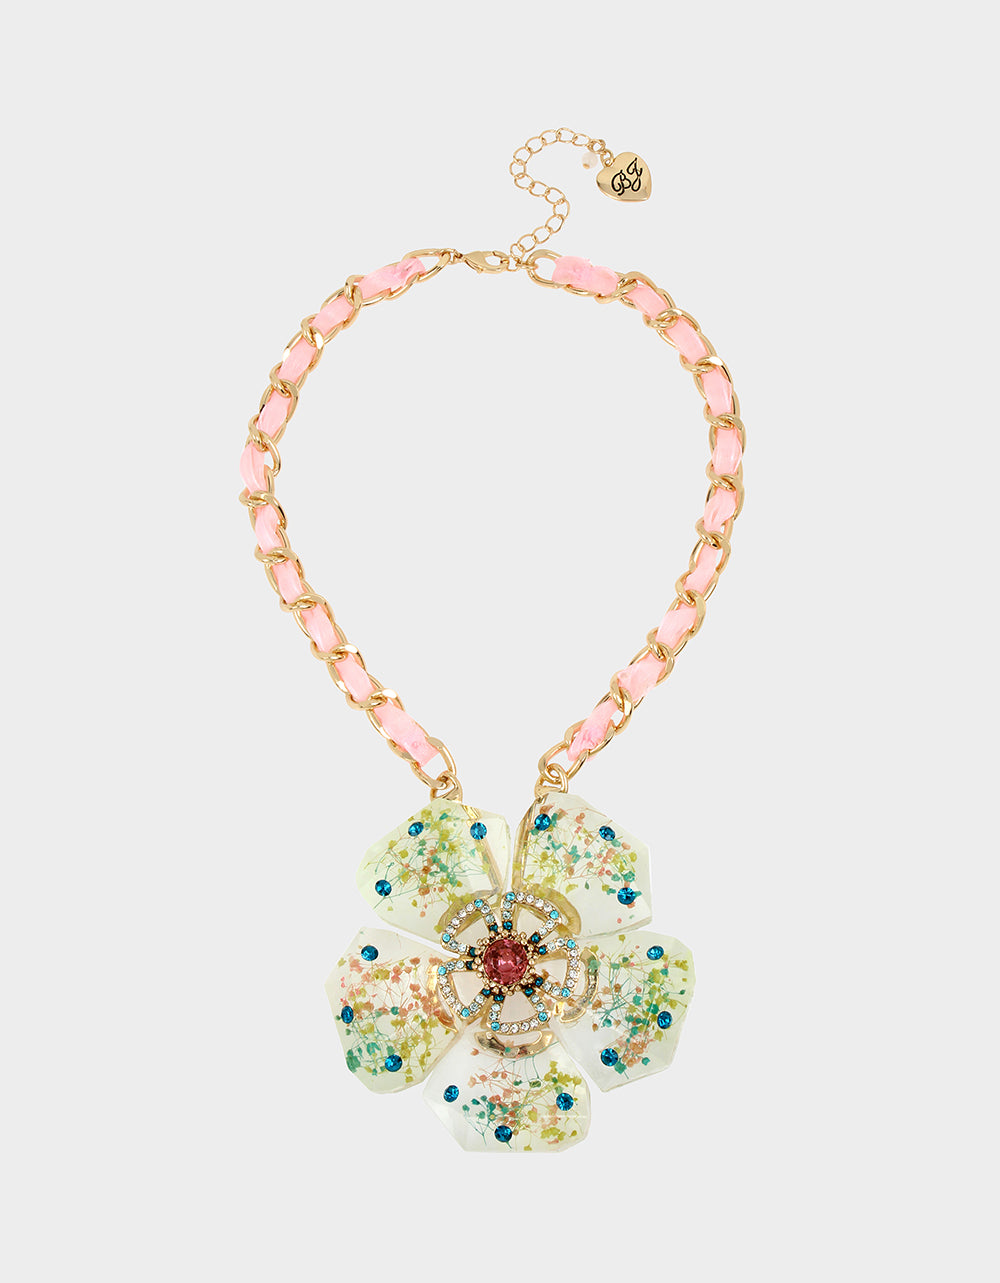 SWEETNESS AND LIGHT FLOWER NECKLACE MULTI - JEWELRY - Betsey Johnson